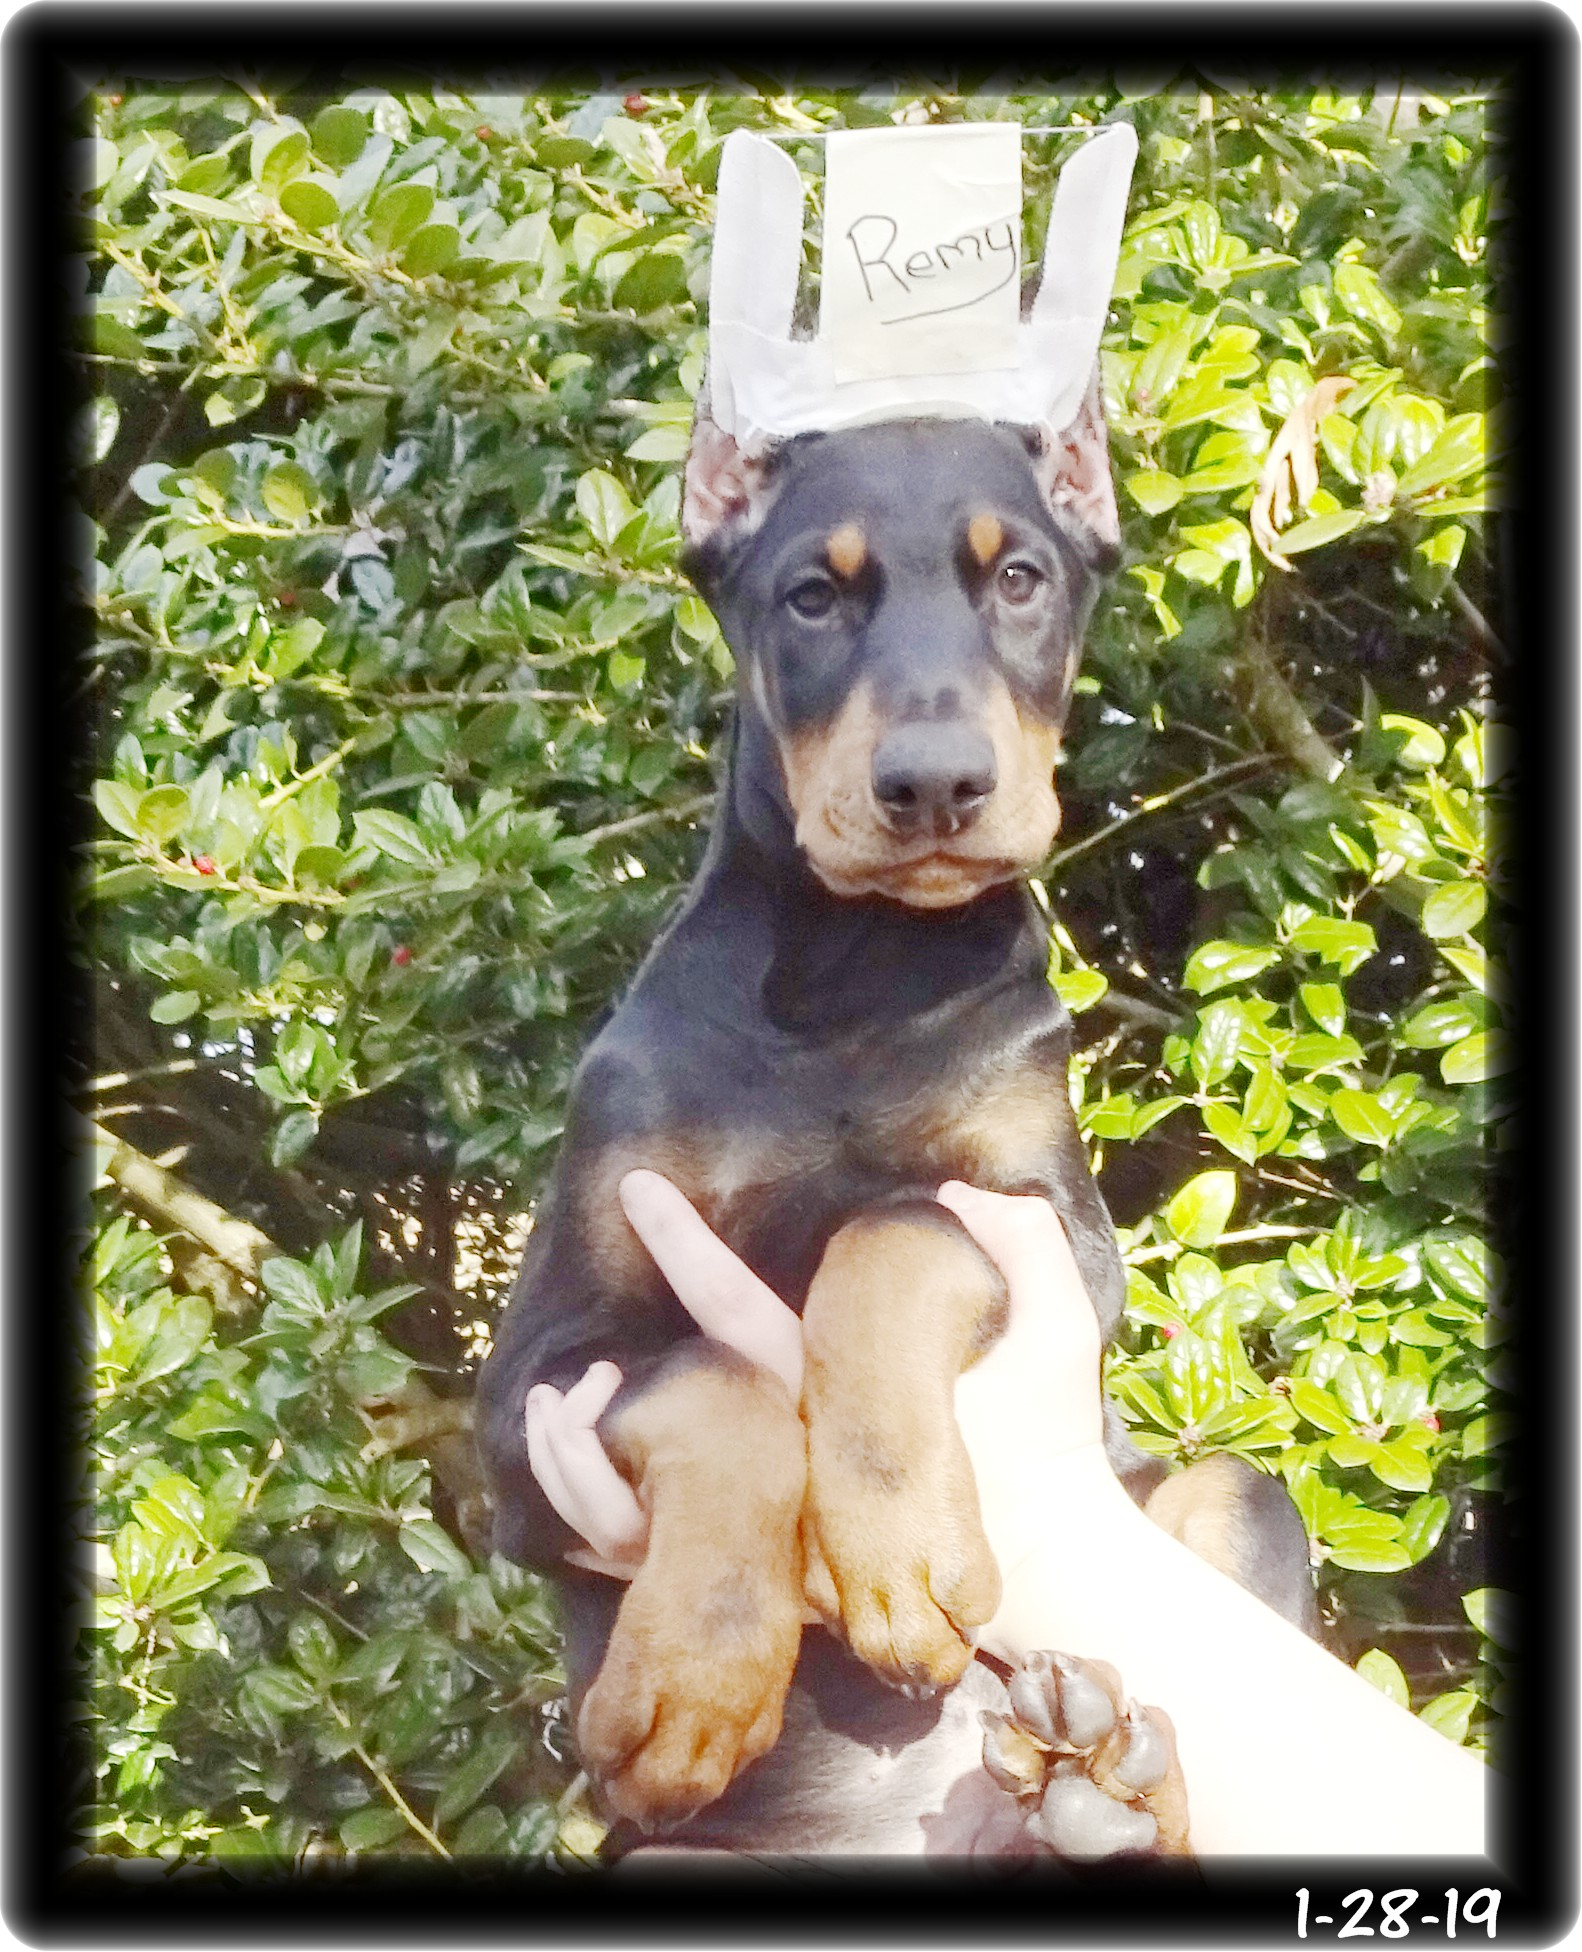 Remington ...  born 11-17-18 - With his family in  Lancaster SC ...click photo to go into his site, learn about this boy & see his video